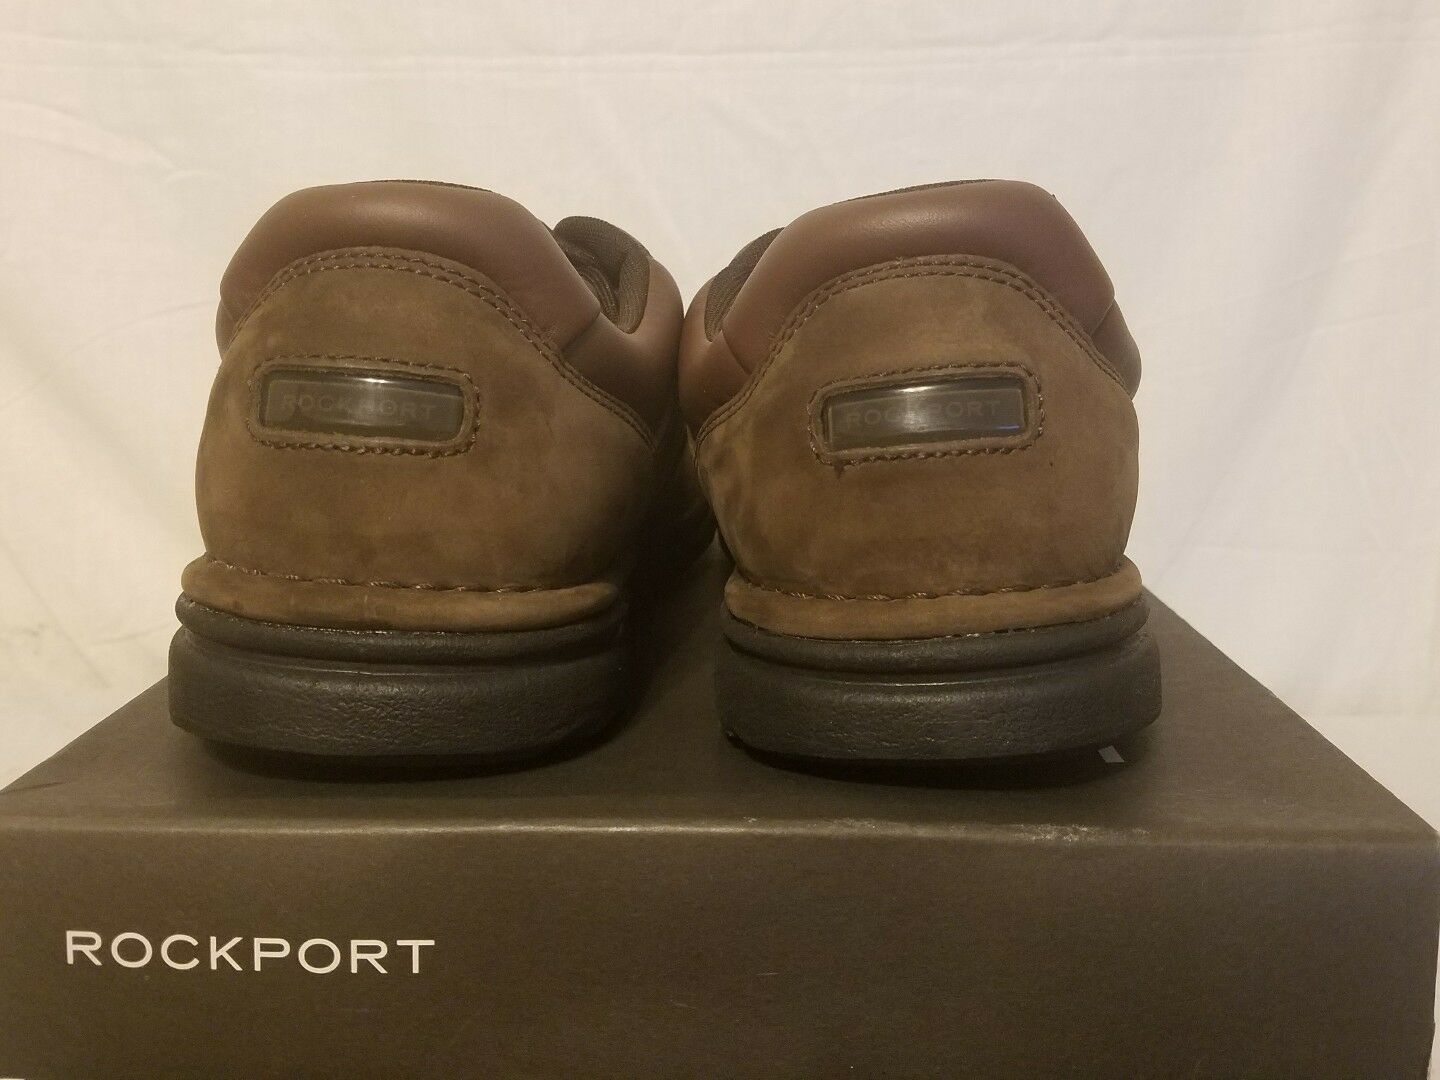 Rockport Shoes Eureka Casual Oxfords Pelle Uomo Lace Up Casuals Shoes Rockport dac438